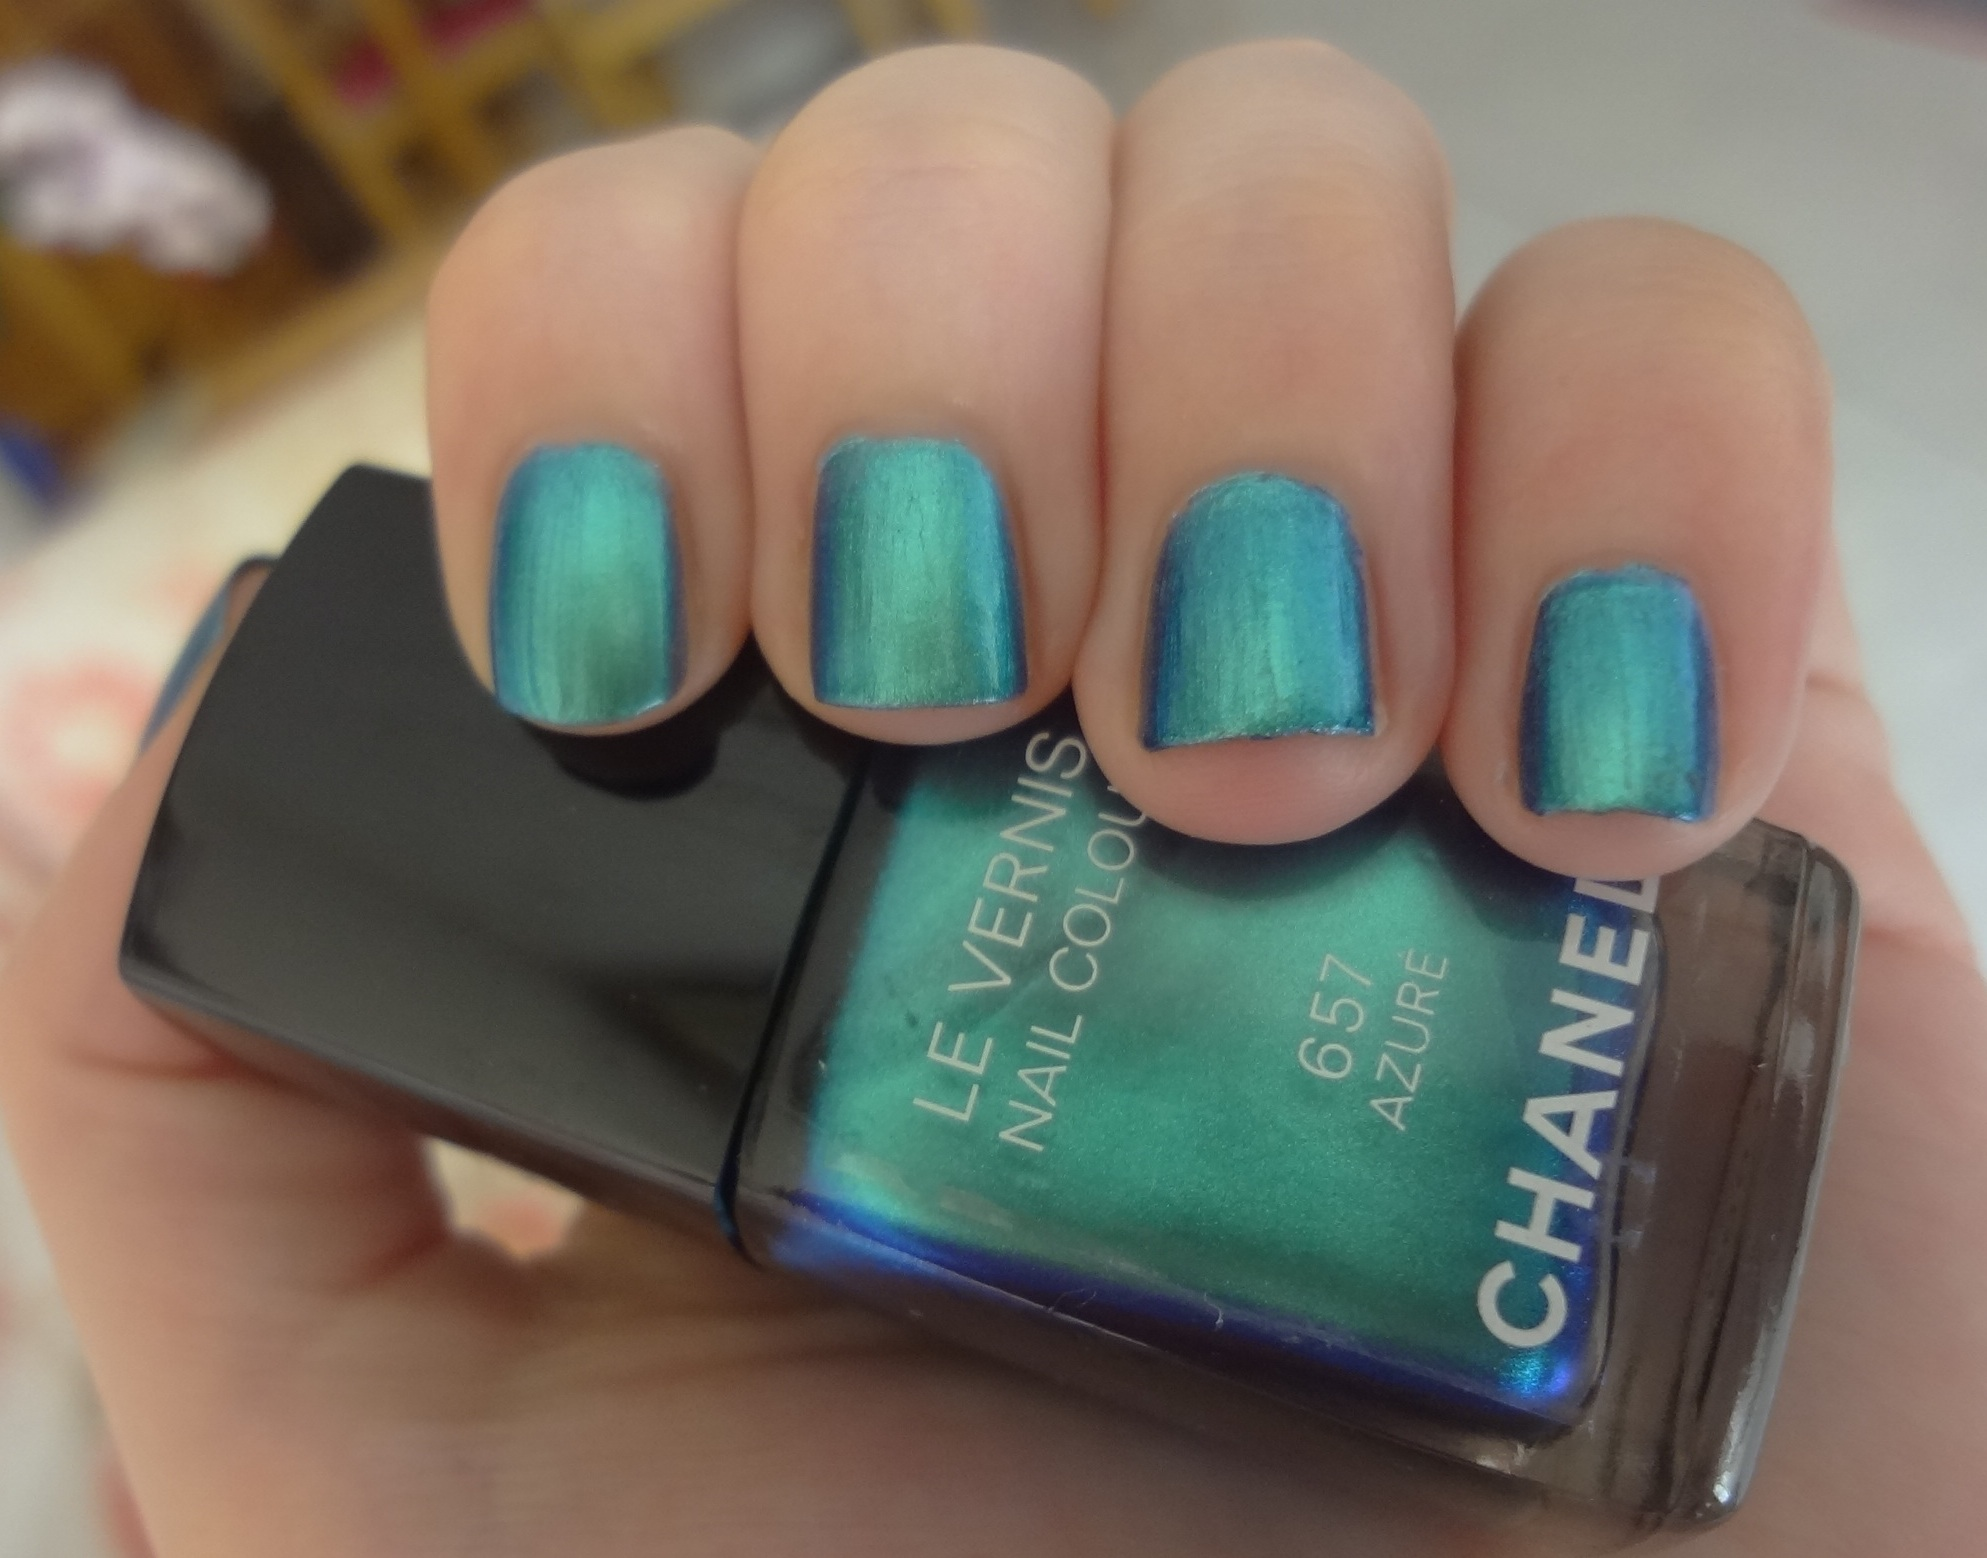 Chanel Azure Nail Polish Review Through The Looking Glass